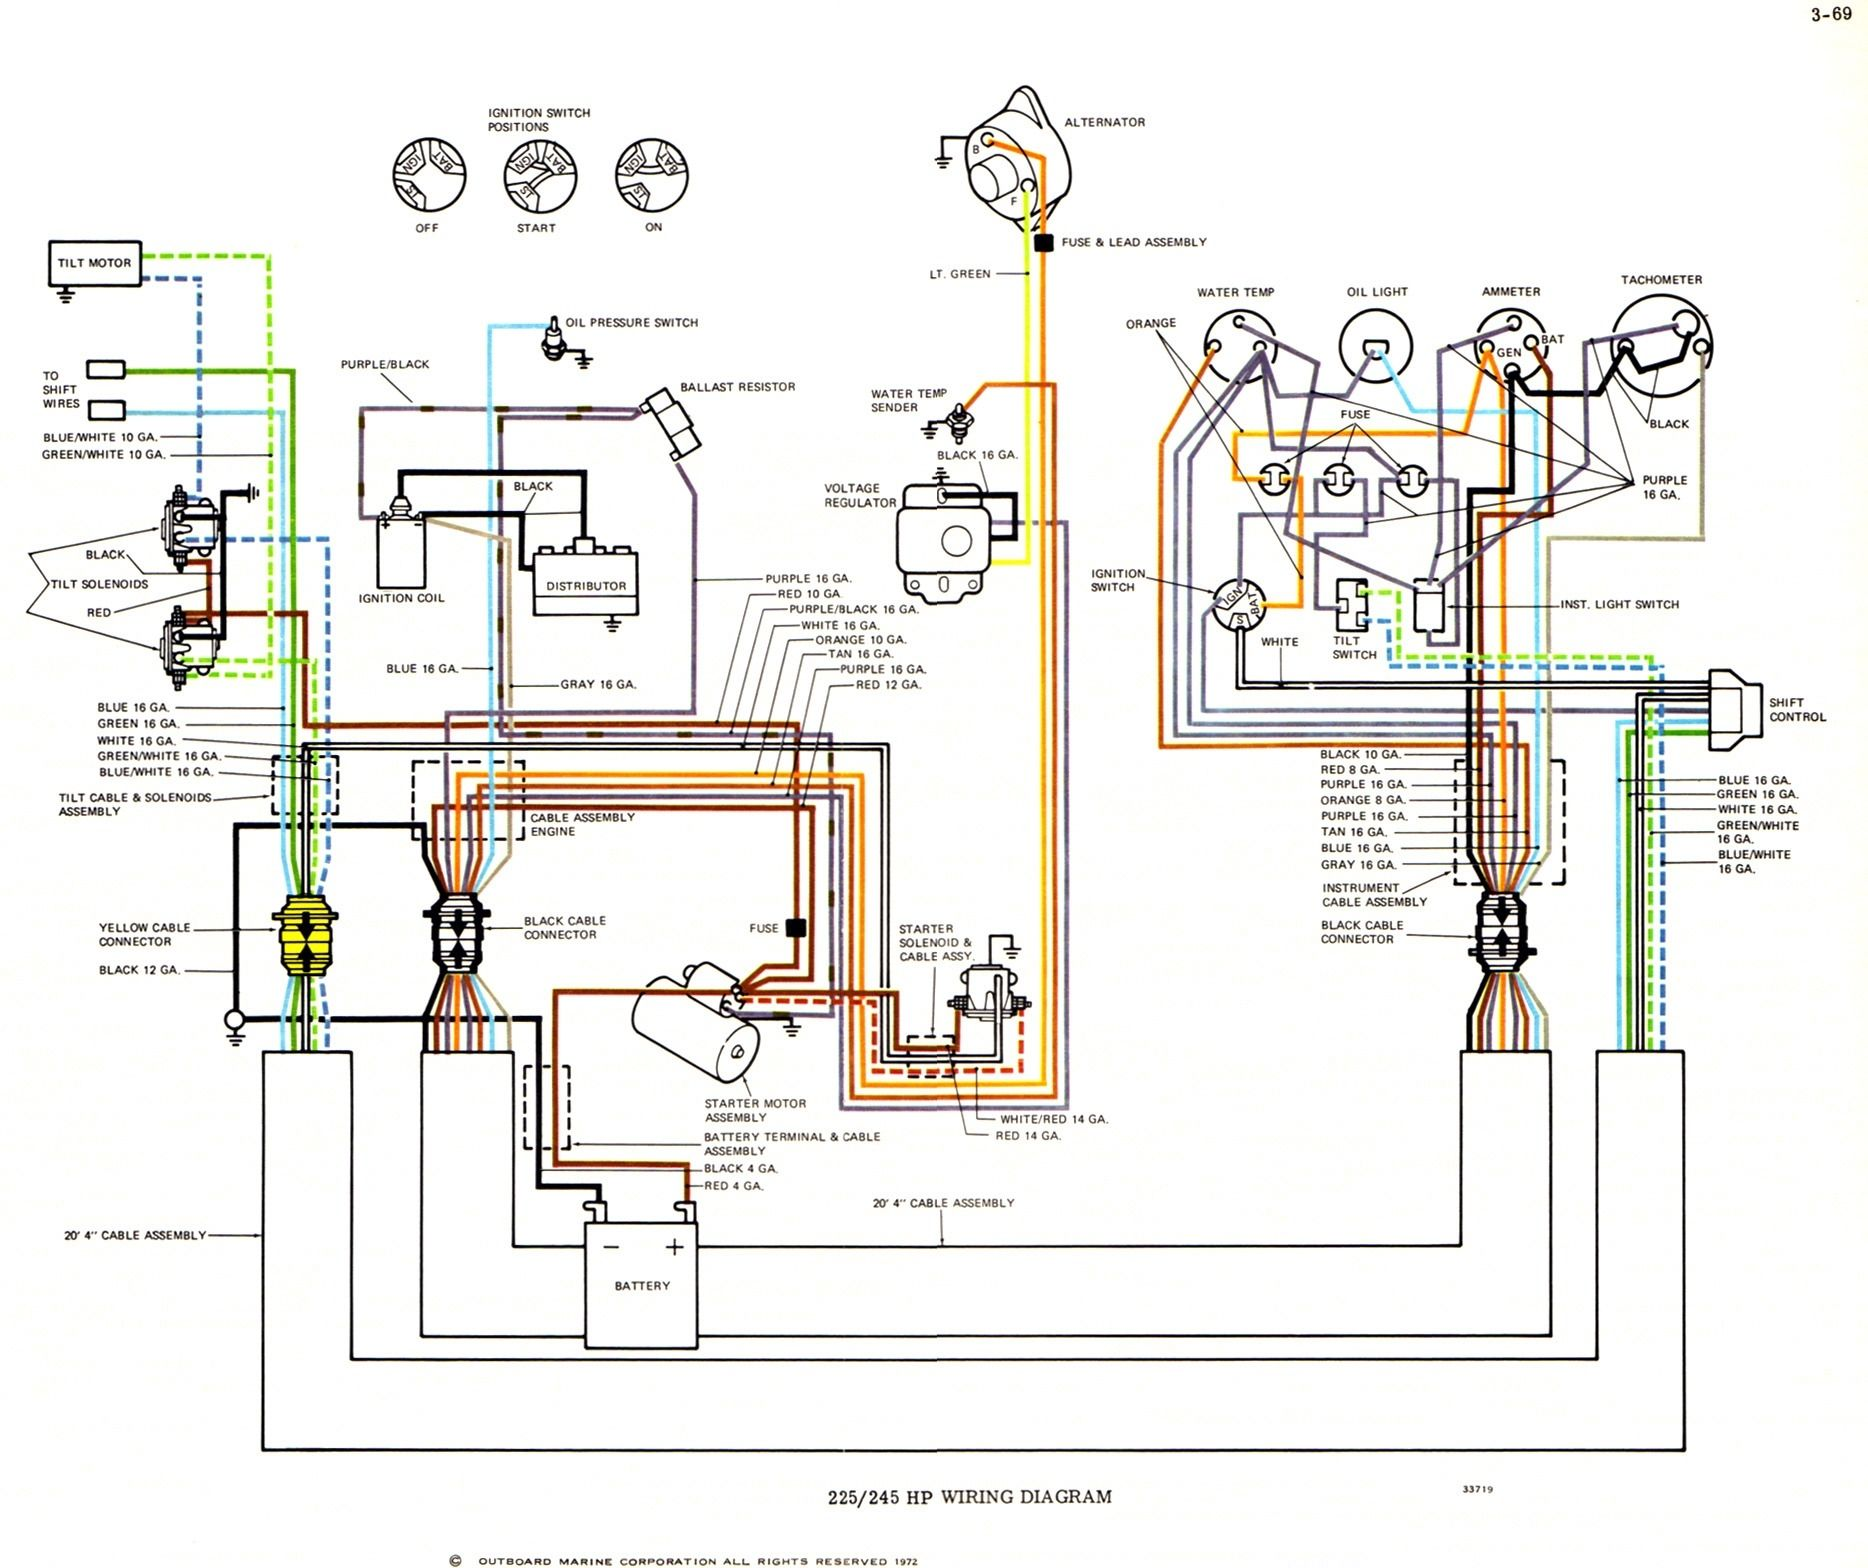 yamaha outboard electrical wiring diagram | wiringdiagram.org ...  pinterest